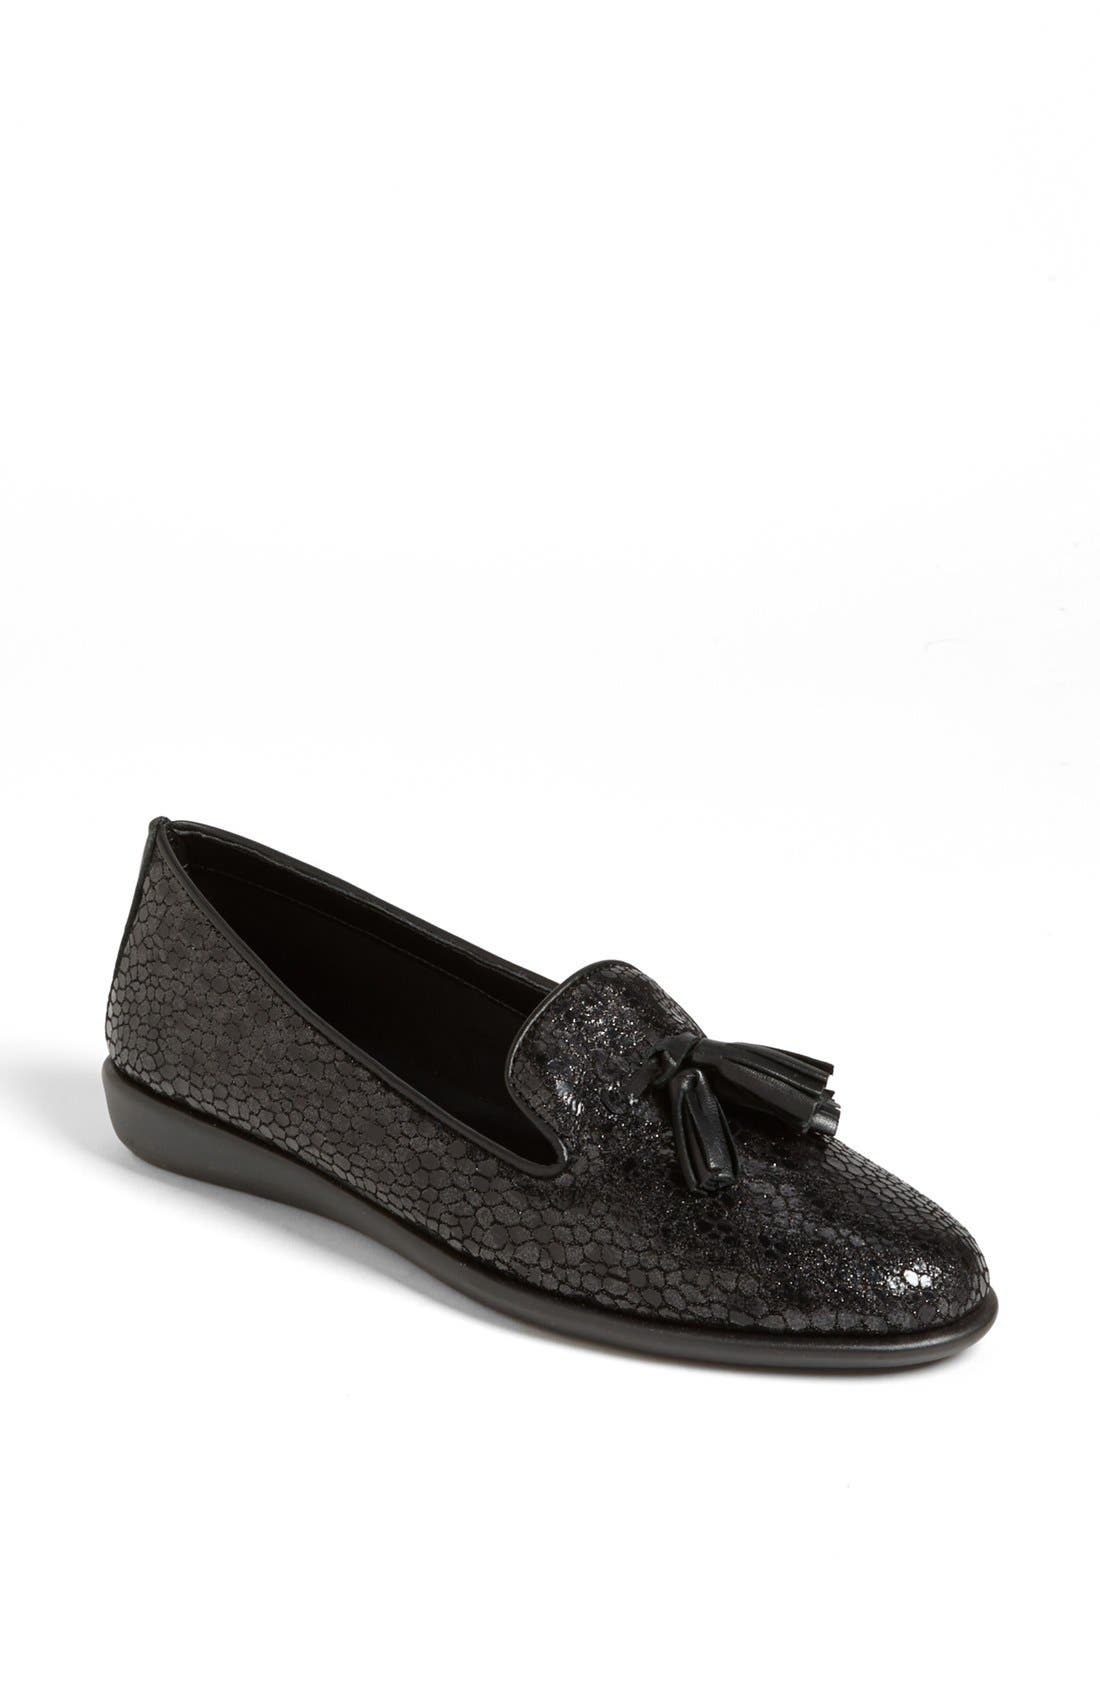 Alternate Image 1 Selected - The FLEXX 'Memorise' Flat